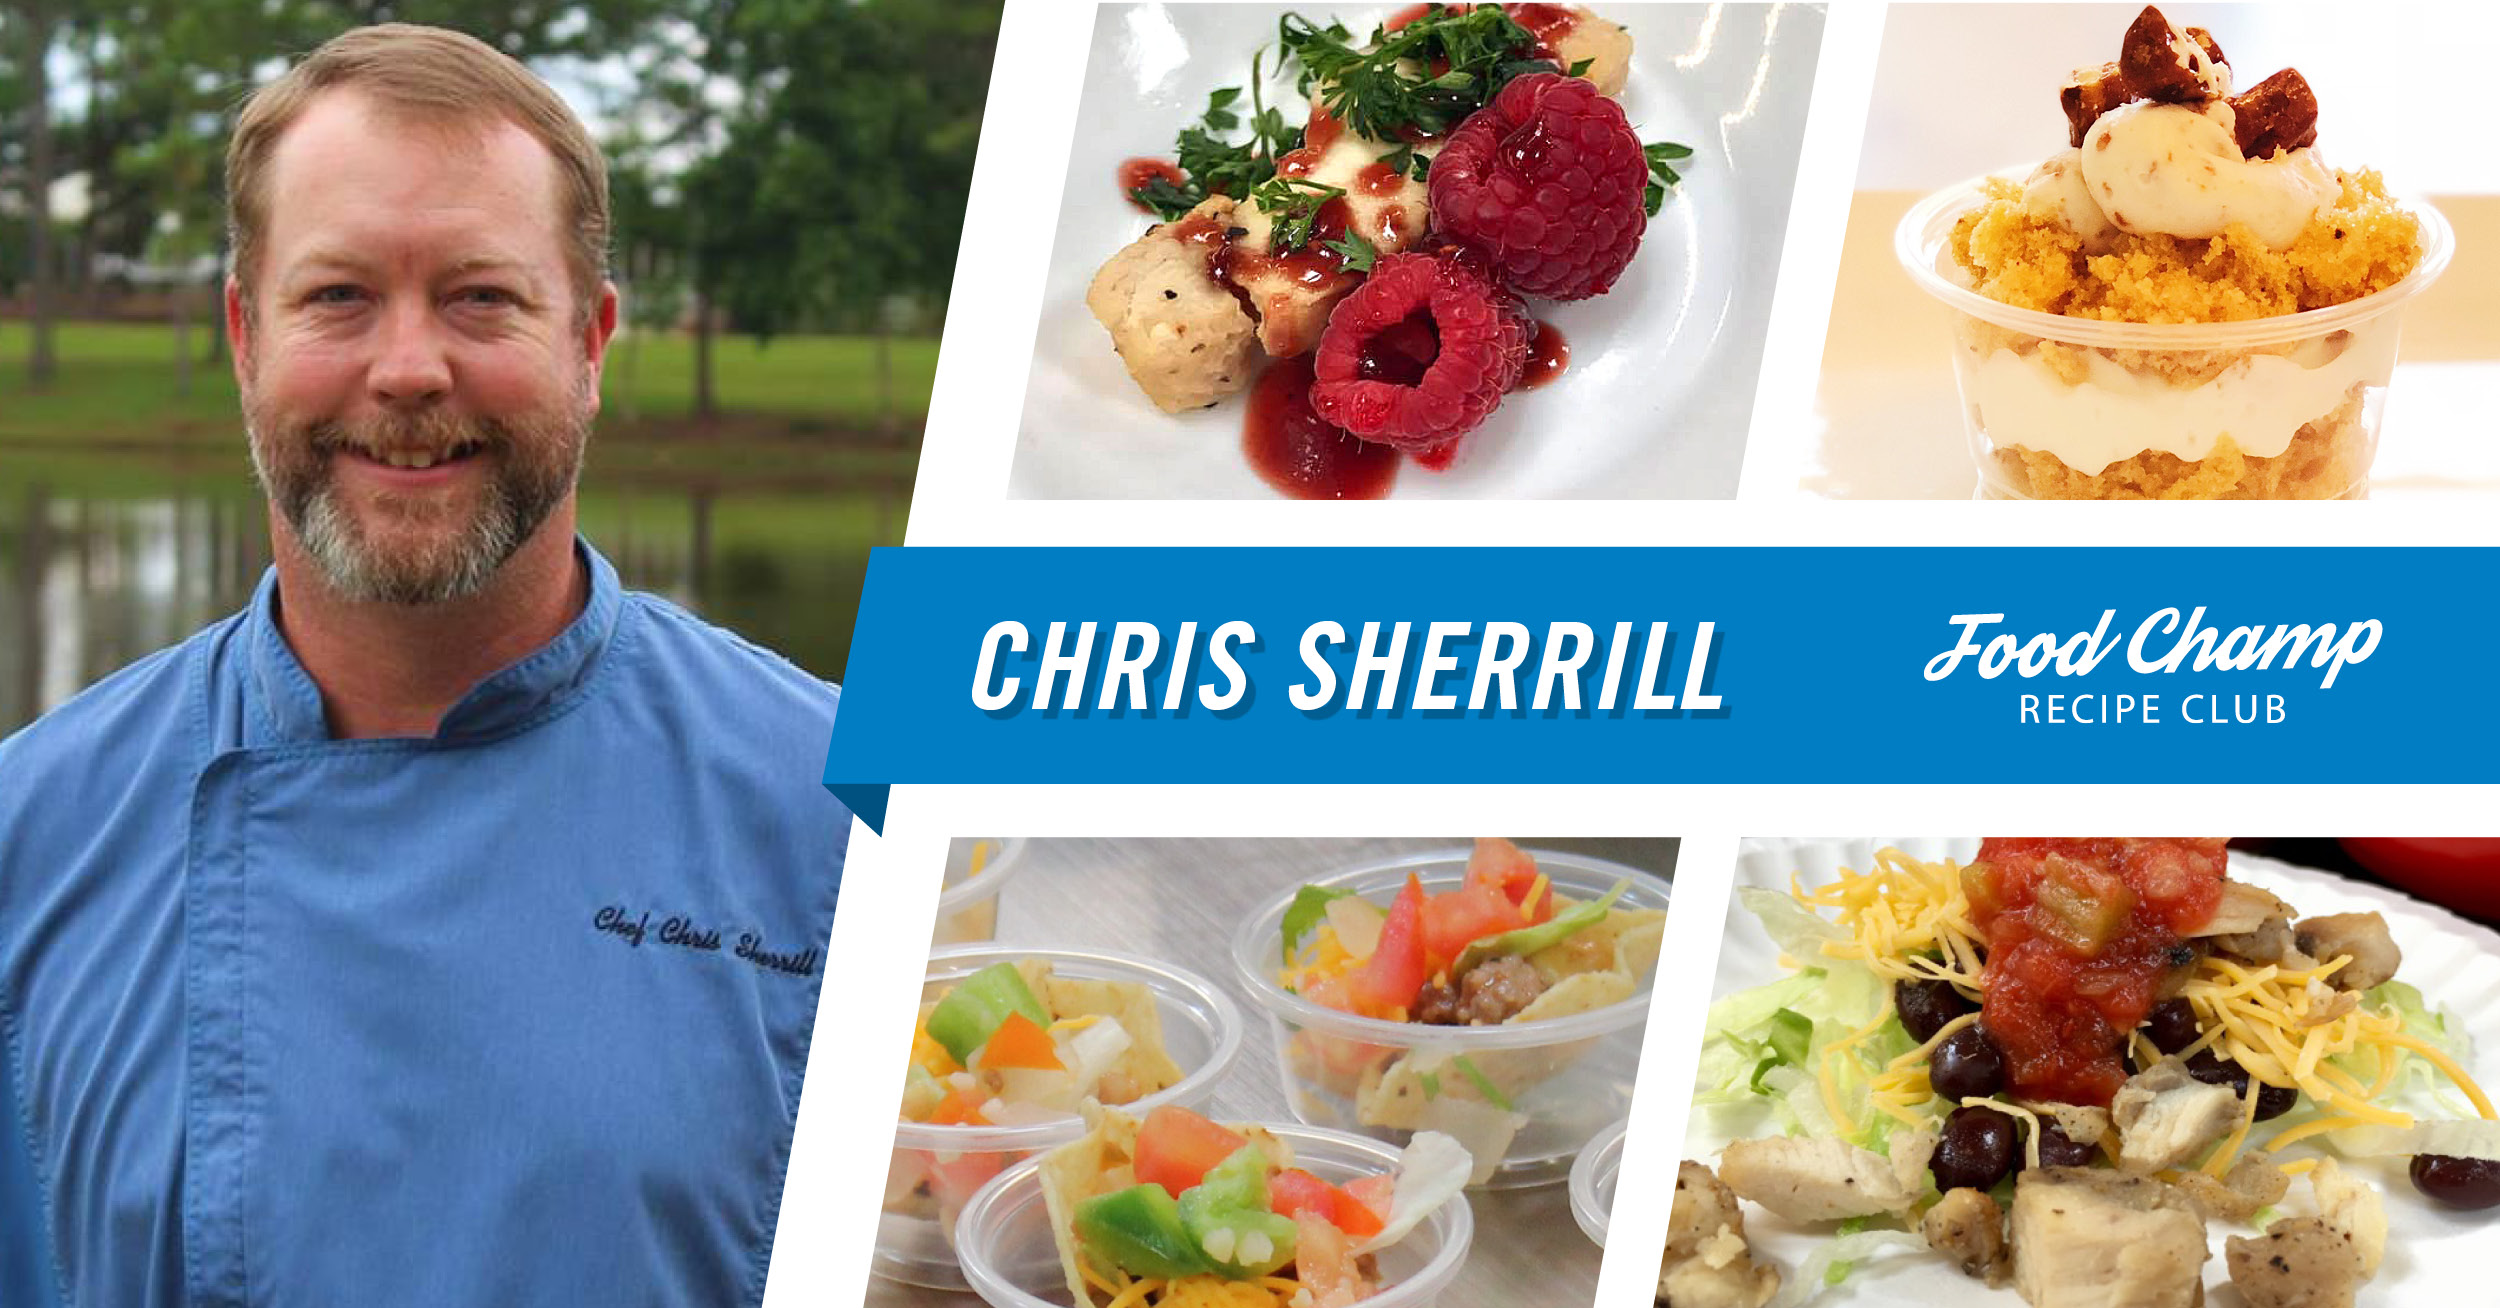 Food Champ Recipe Club - Chris Sherrill -- 2018-walmart-food-champ-chris-sherrill-fb-ad-v1a.jpg